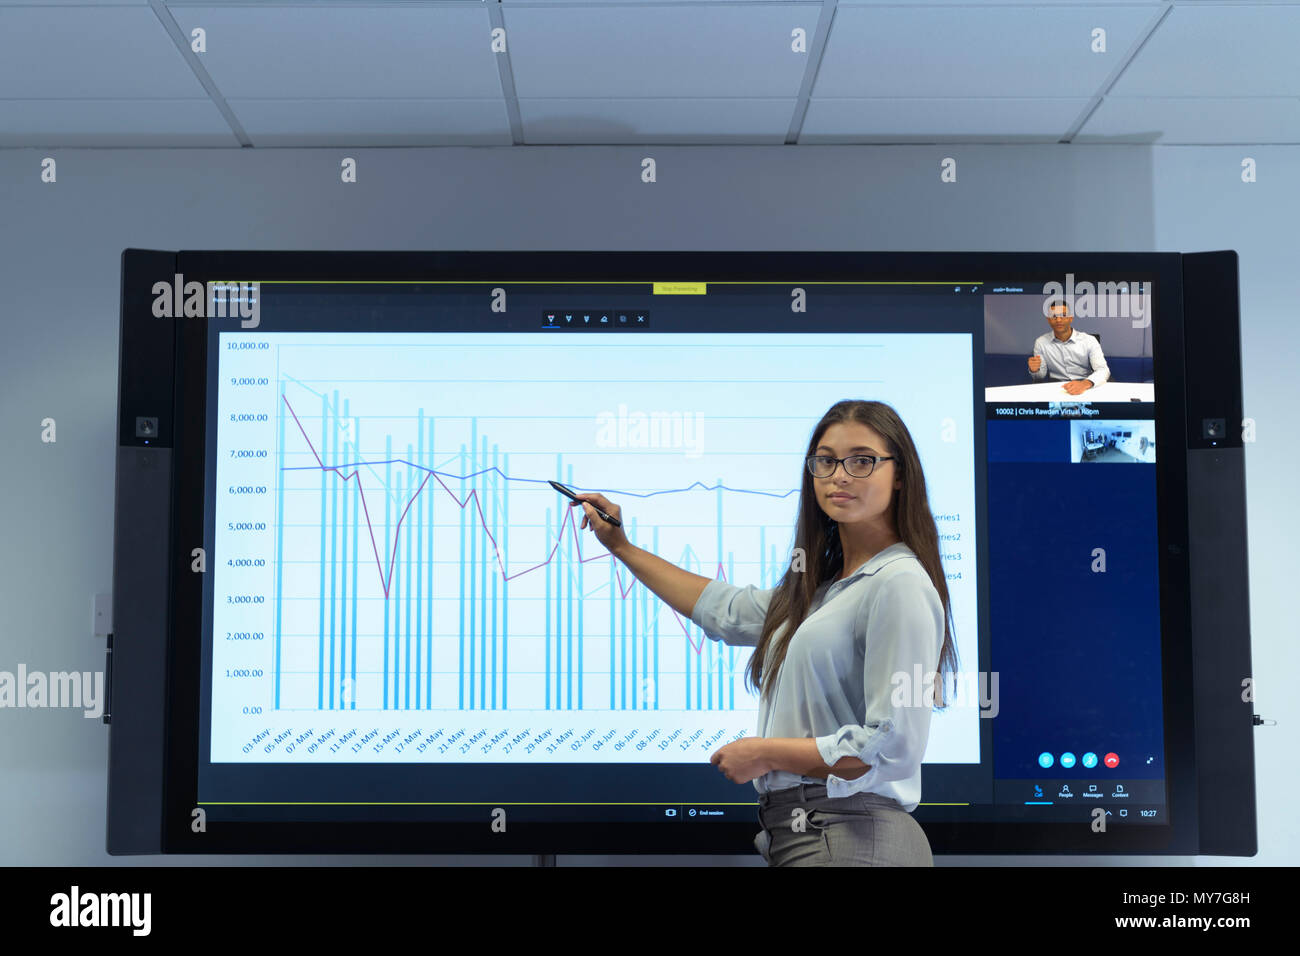 Woman presenting business meeting with graph and video conferencing - Stock Image